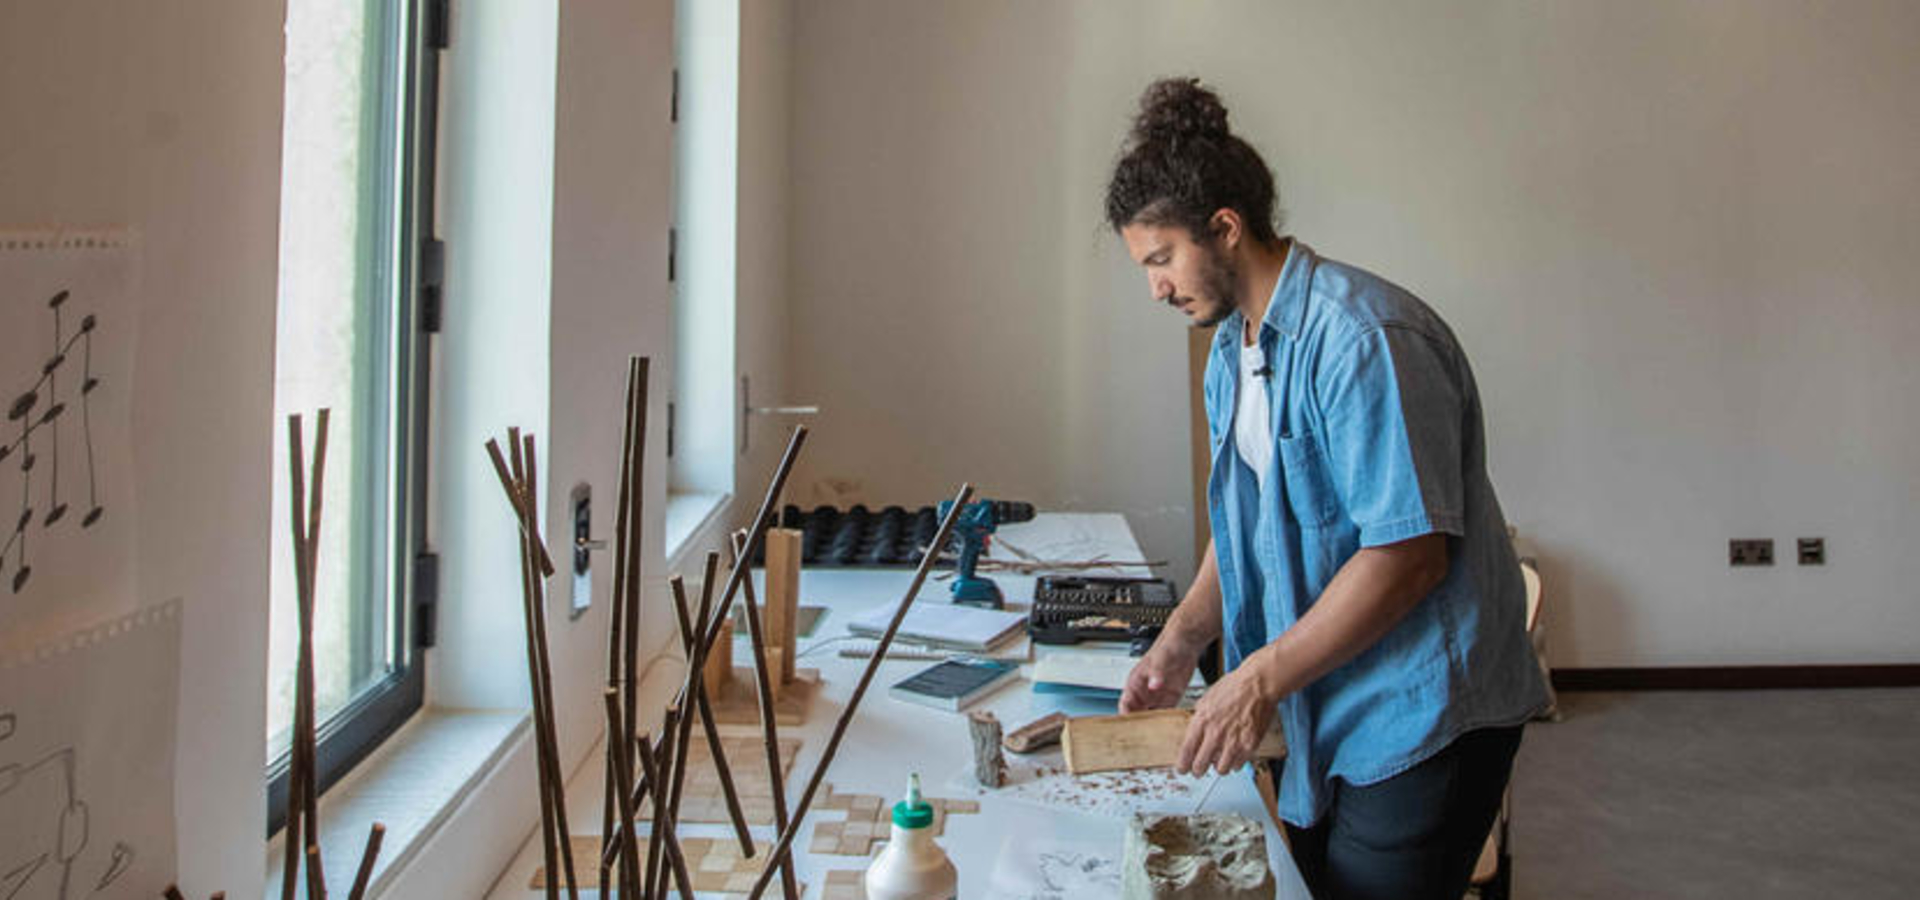 Registration now open for Abu Dhabi Cultural Foundation's Art Residency